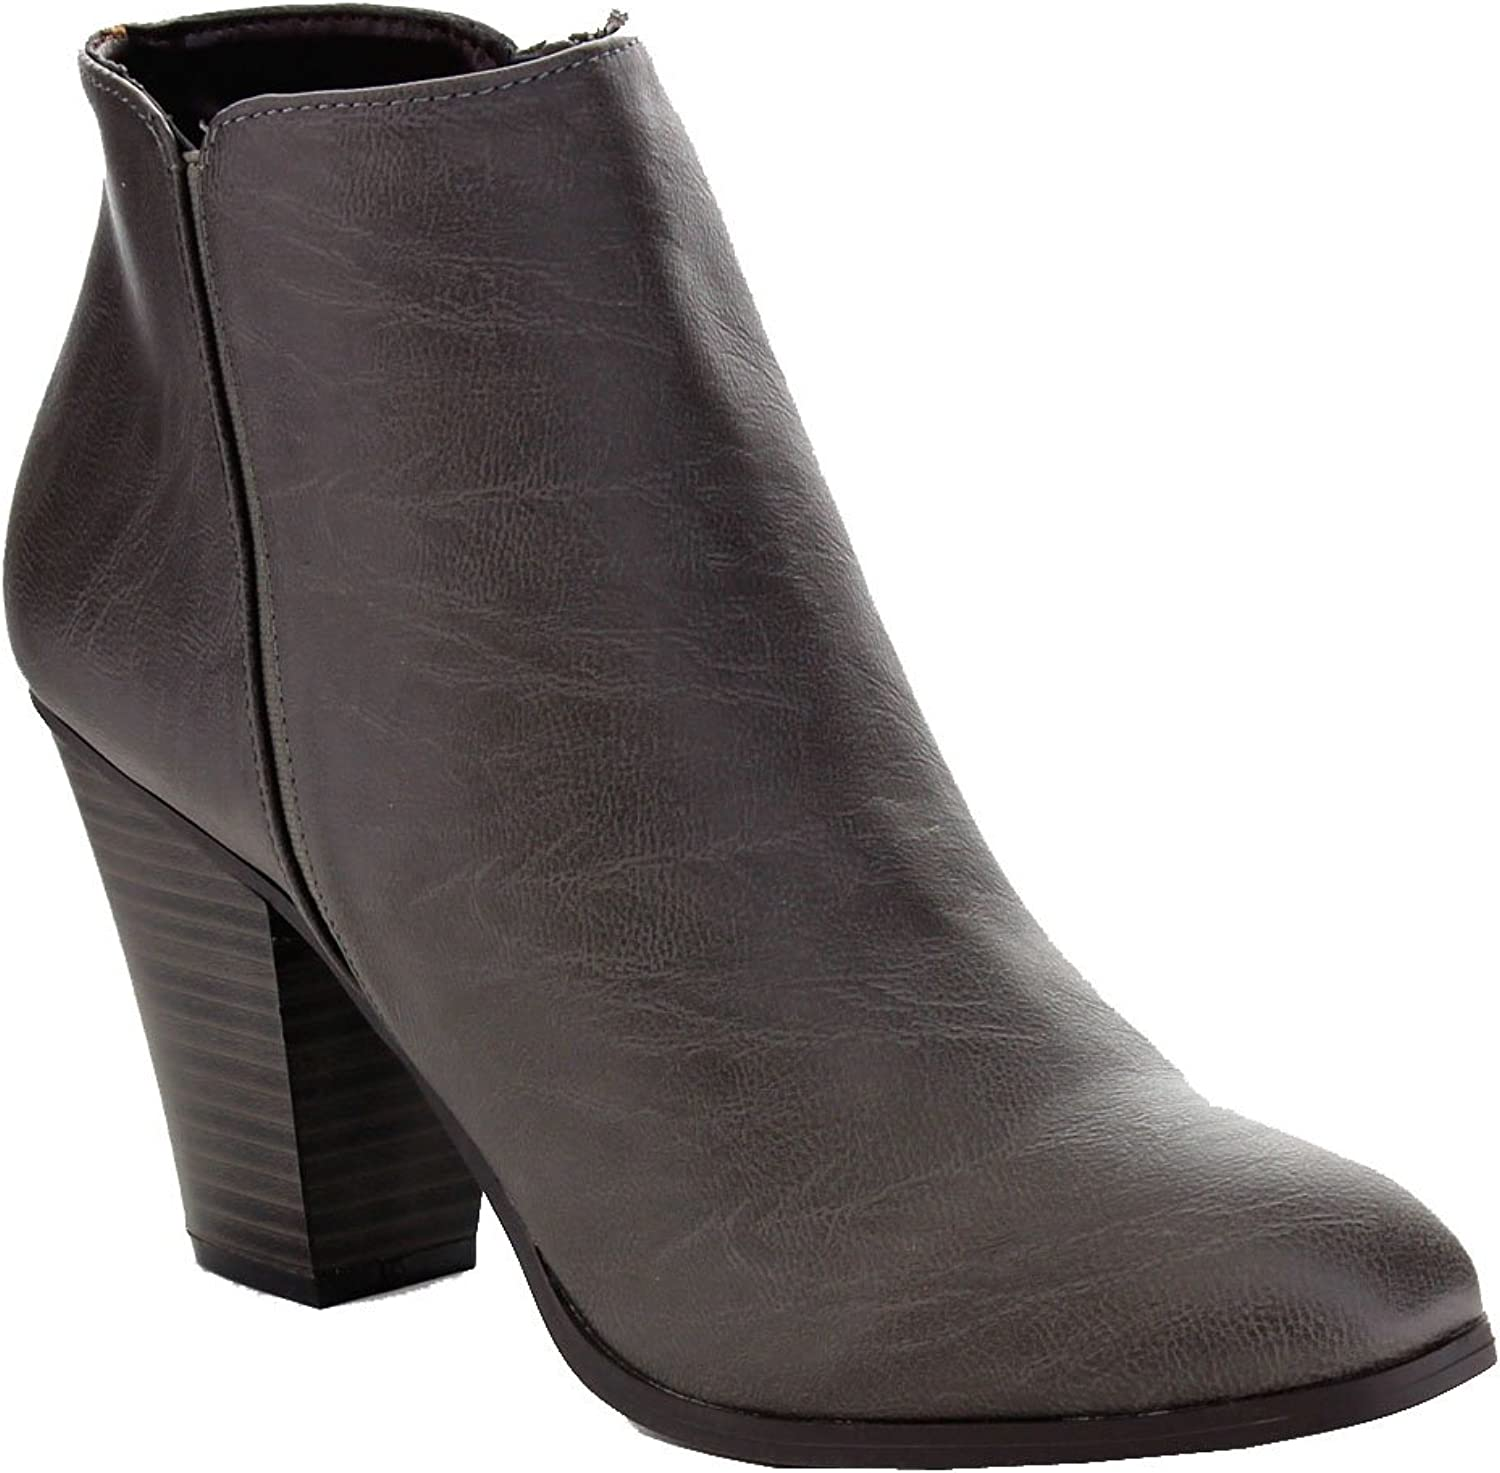 City Classified Tevay-H Leatherette Almond Toe Stack Heel Ankle Bootie - Stone